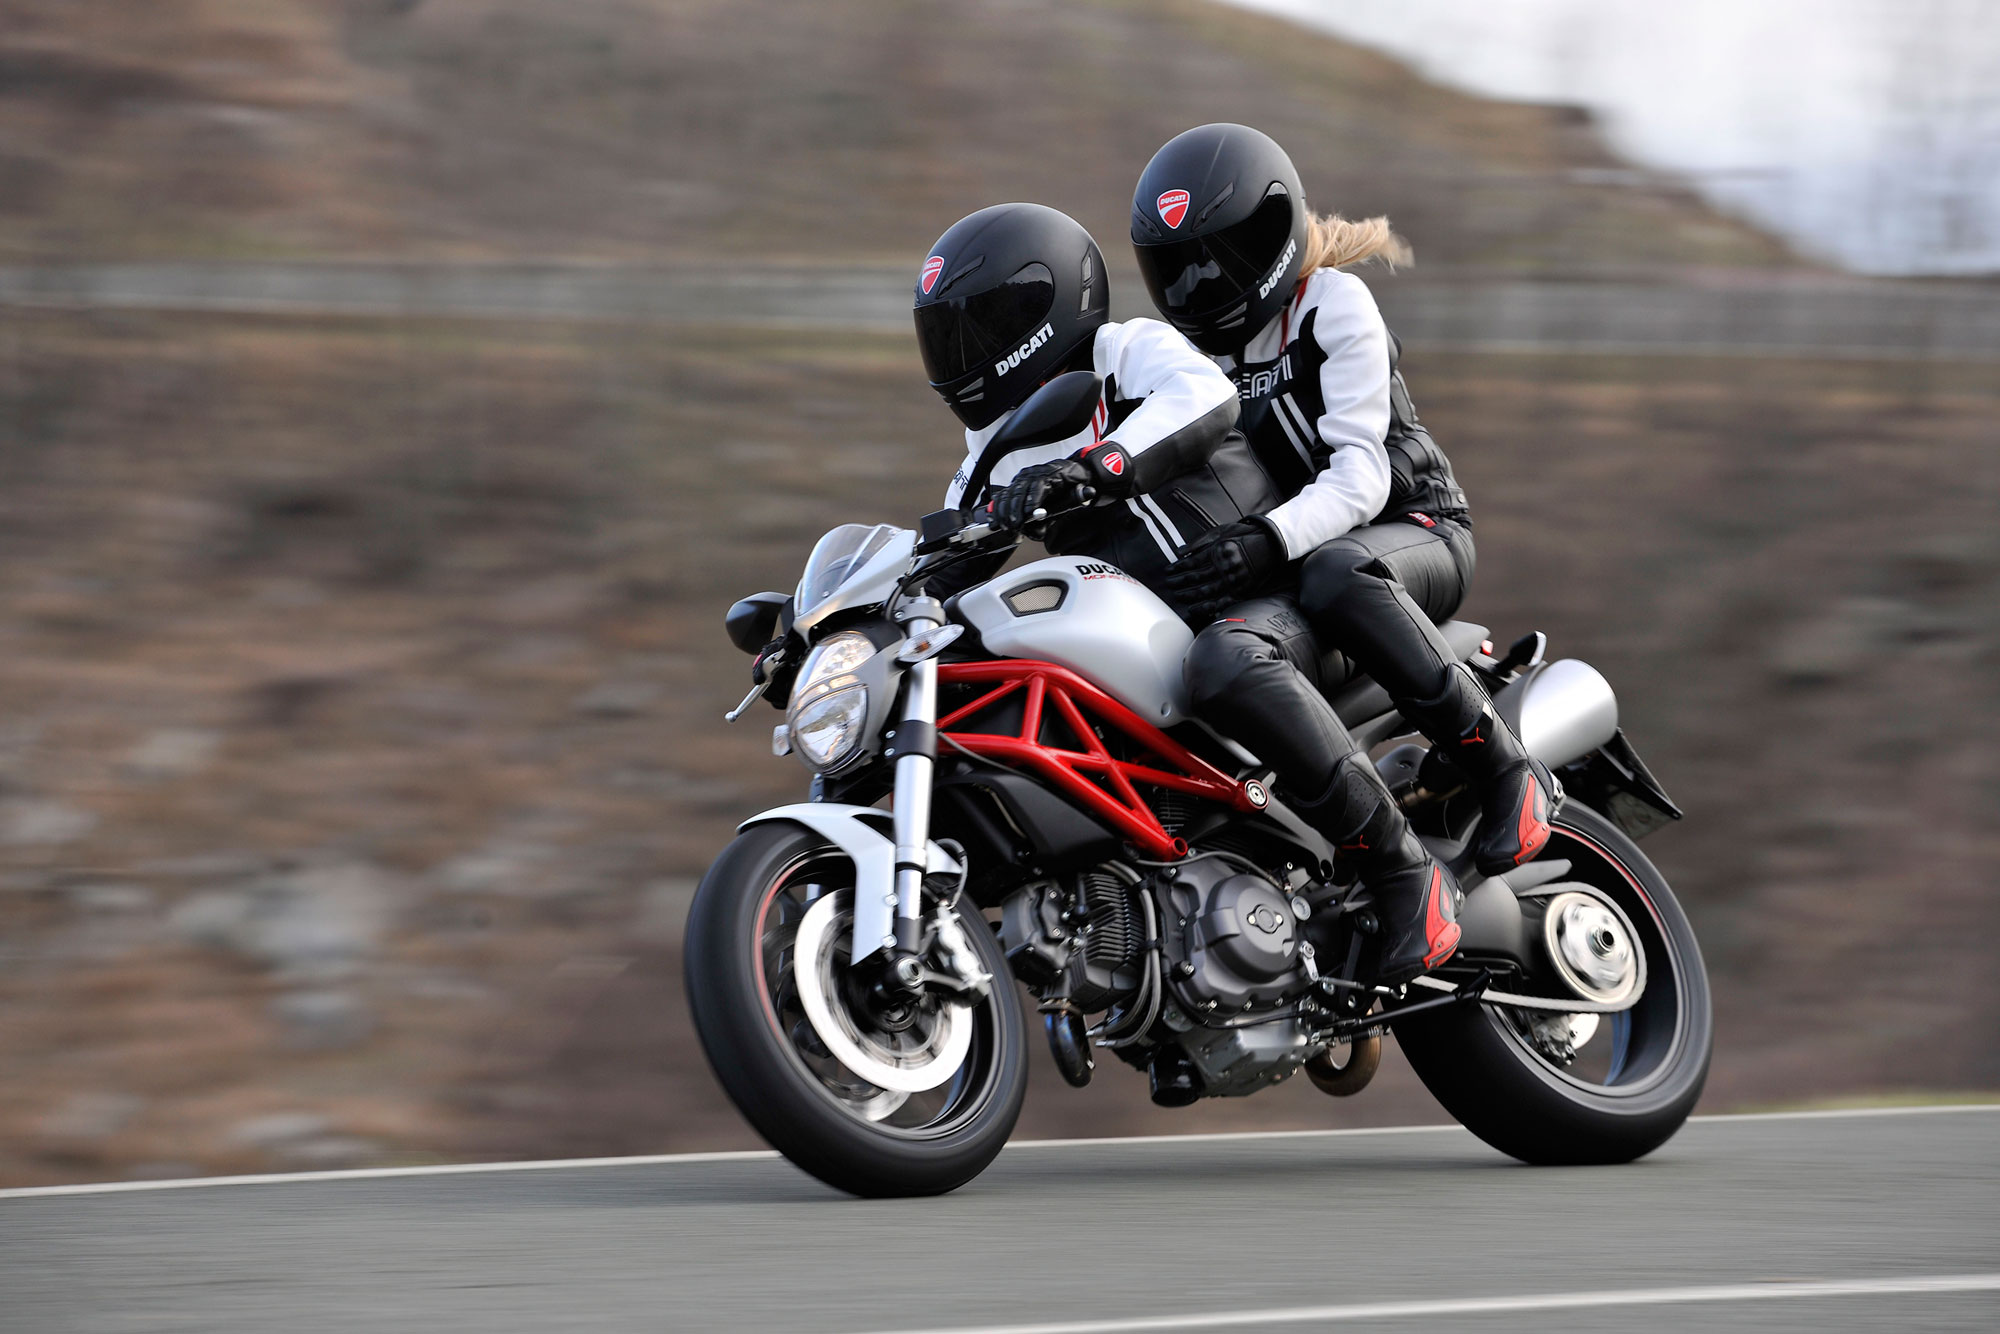 Remarkable 2012 Ducati Monster 796 Review Onthecornerstone Fun Painted Chair Ideas Images Onthecornerstoneorg